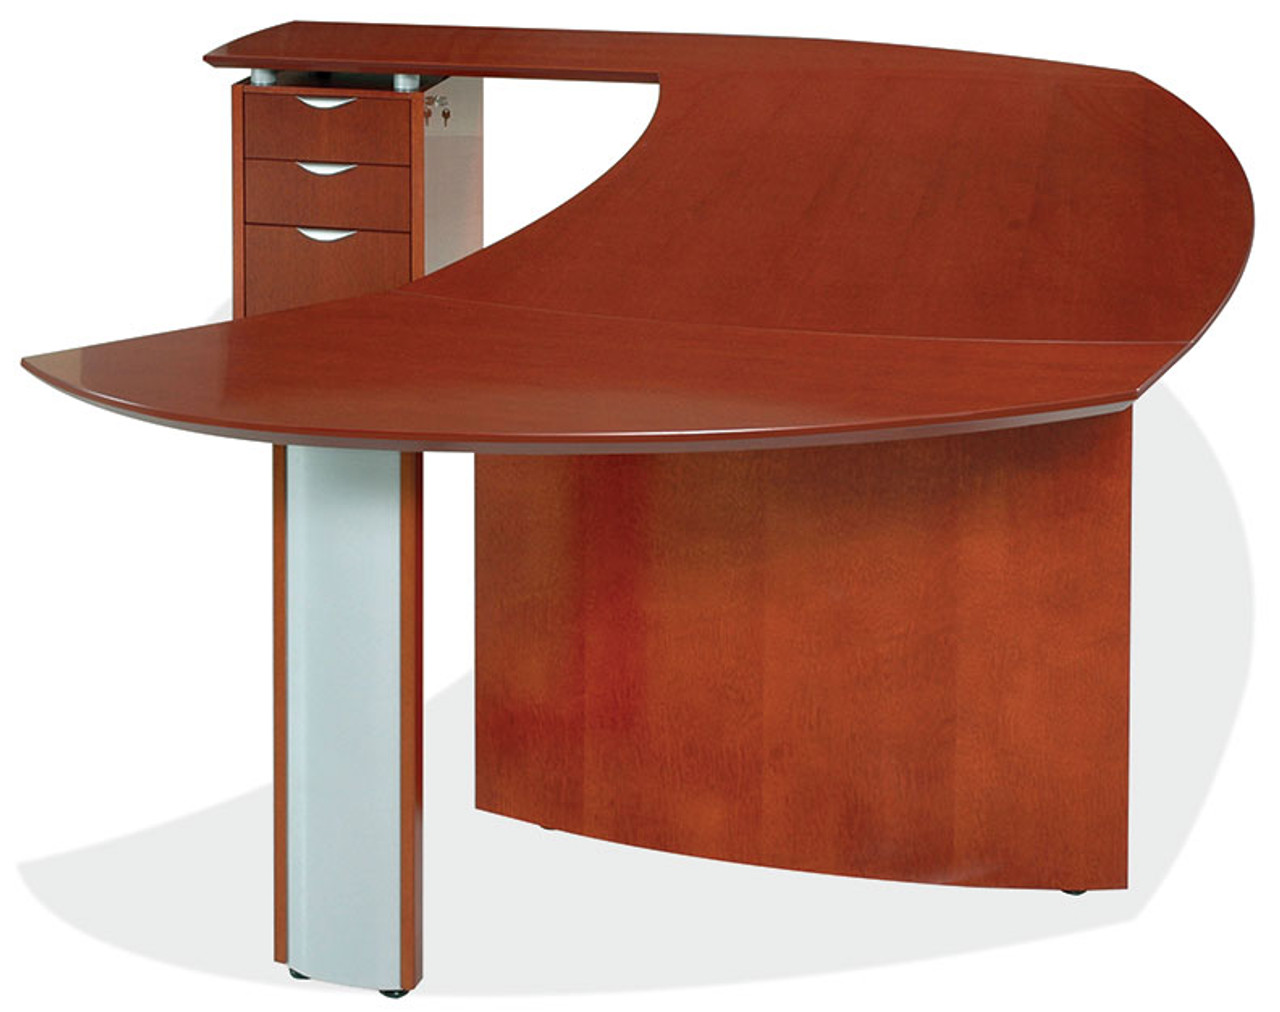 3pc Oval Shape Modern Contemporary Executive Office Desk Set, #PF-TEC-O1